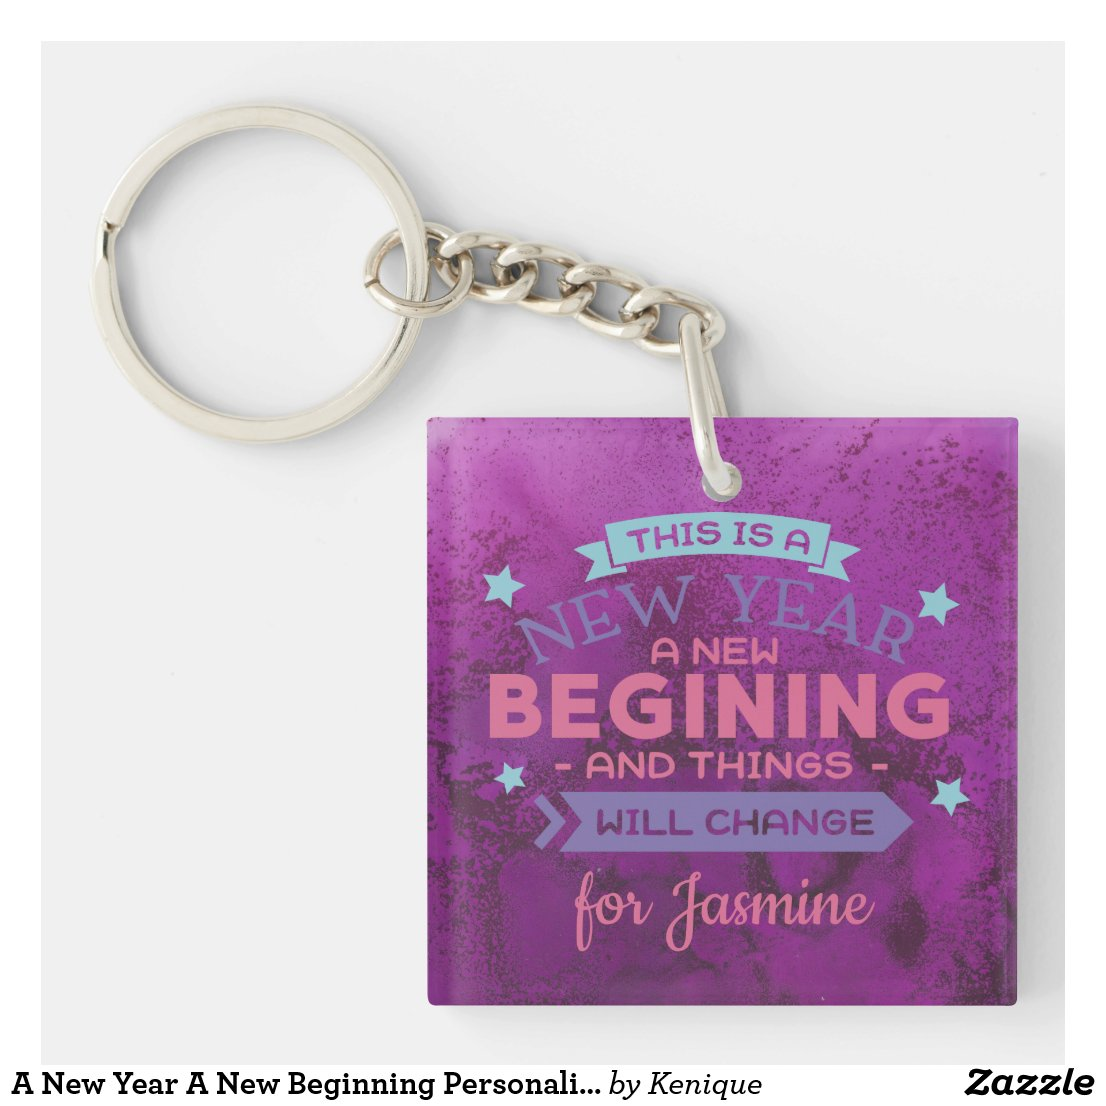 A New Year A New Beginning Keychain